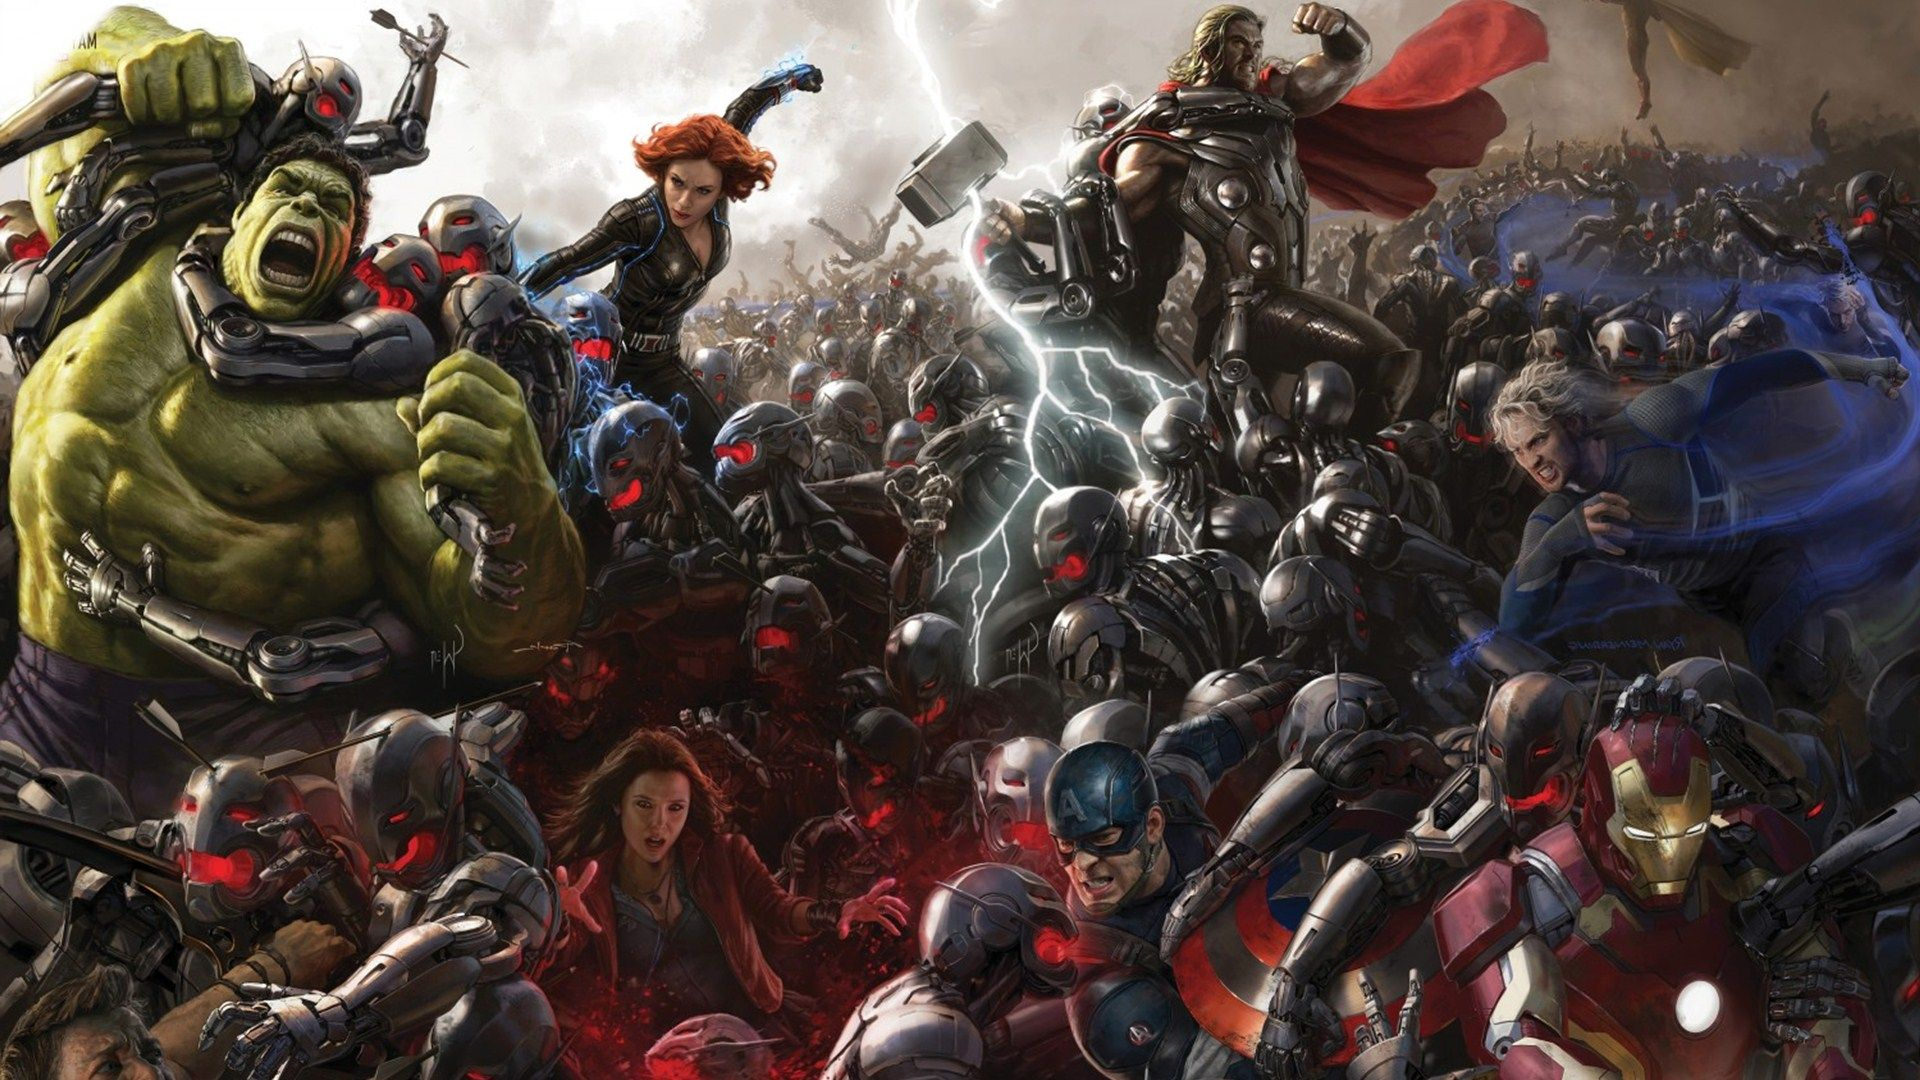 avengers marvel wallpaper 1920×1080 download hd wallpapers of